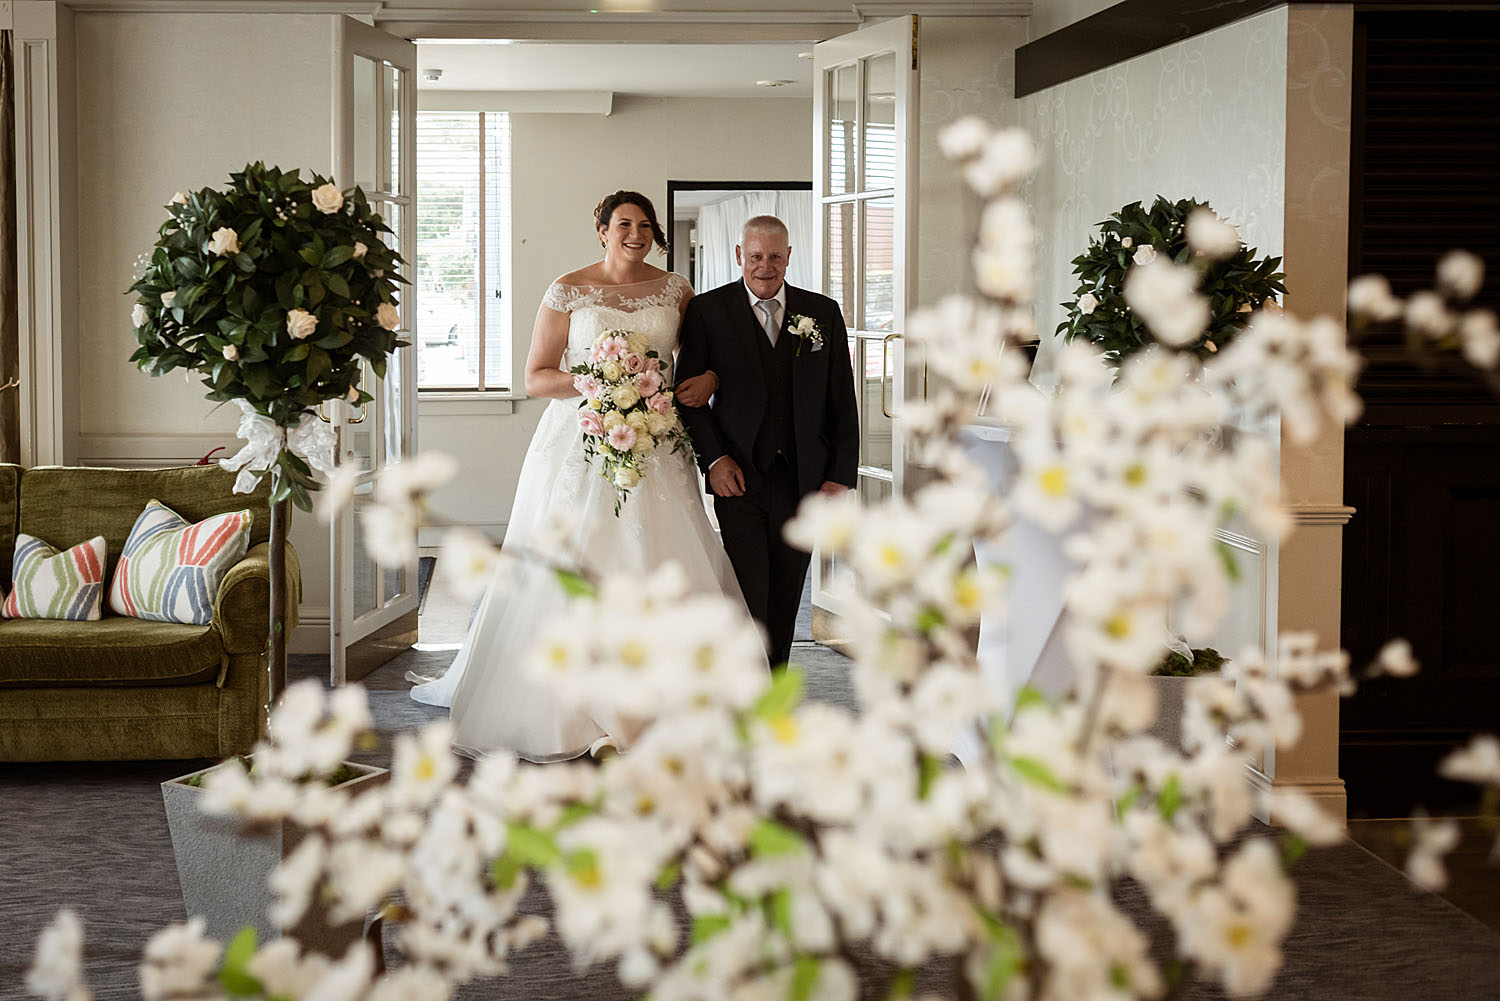 Actons Hotel Kinsale Wedding